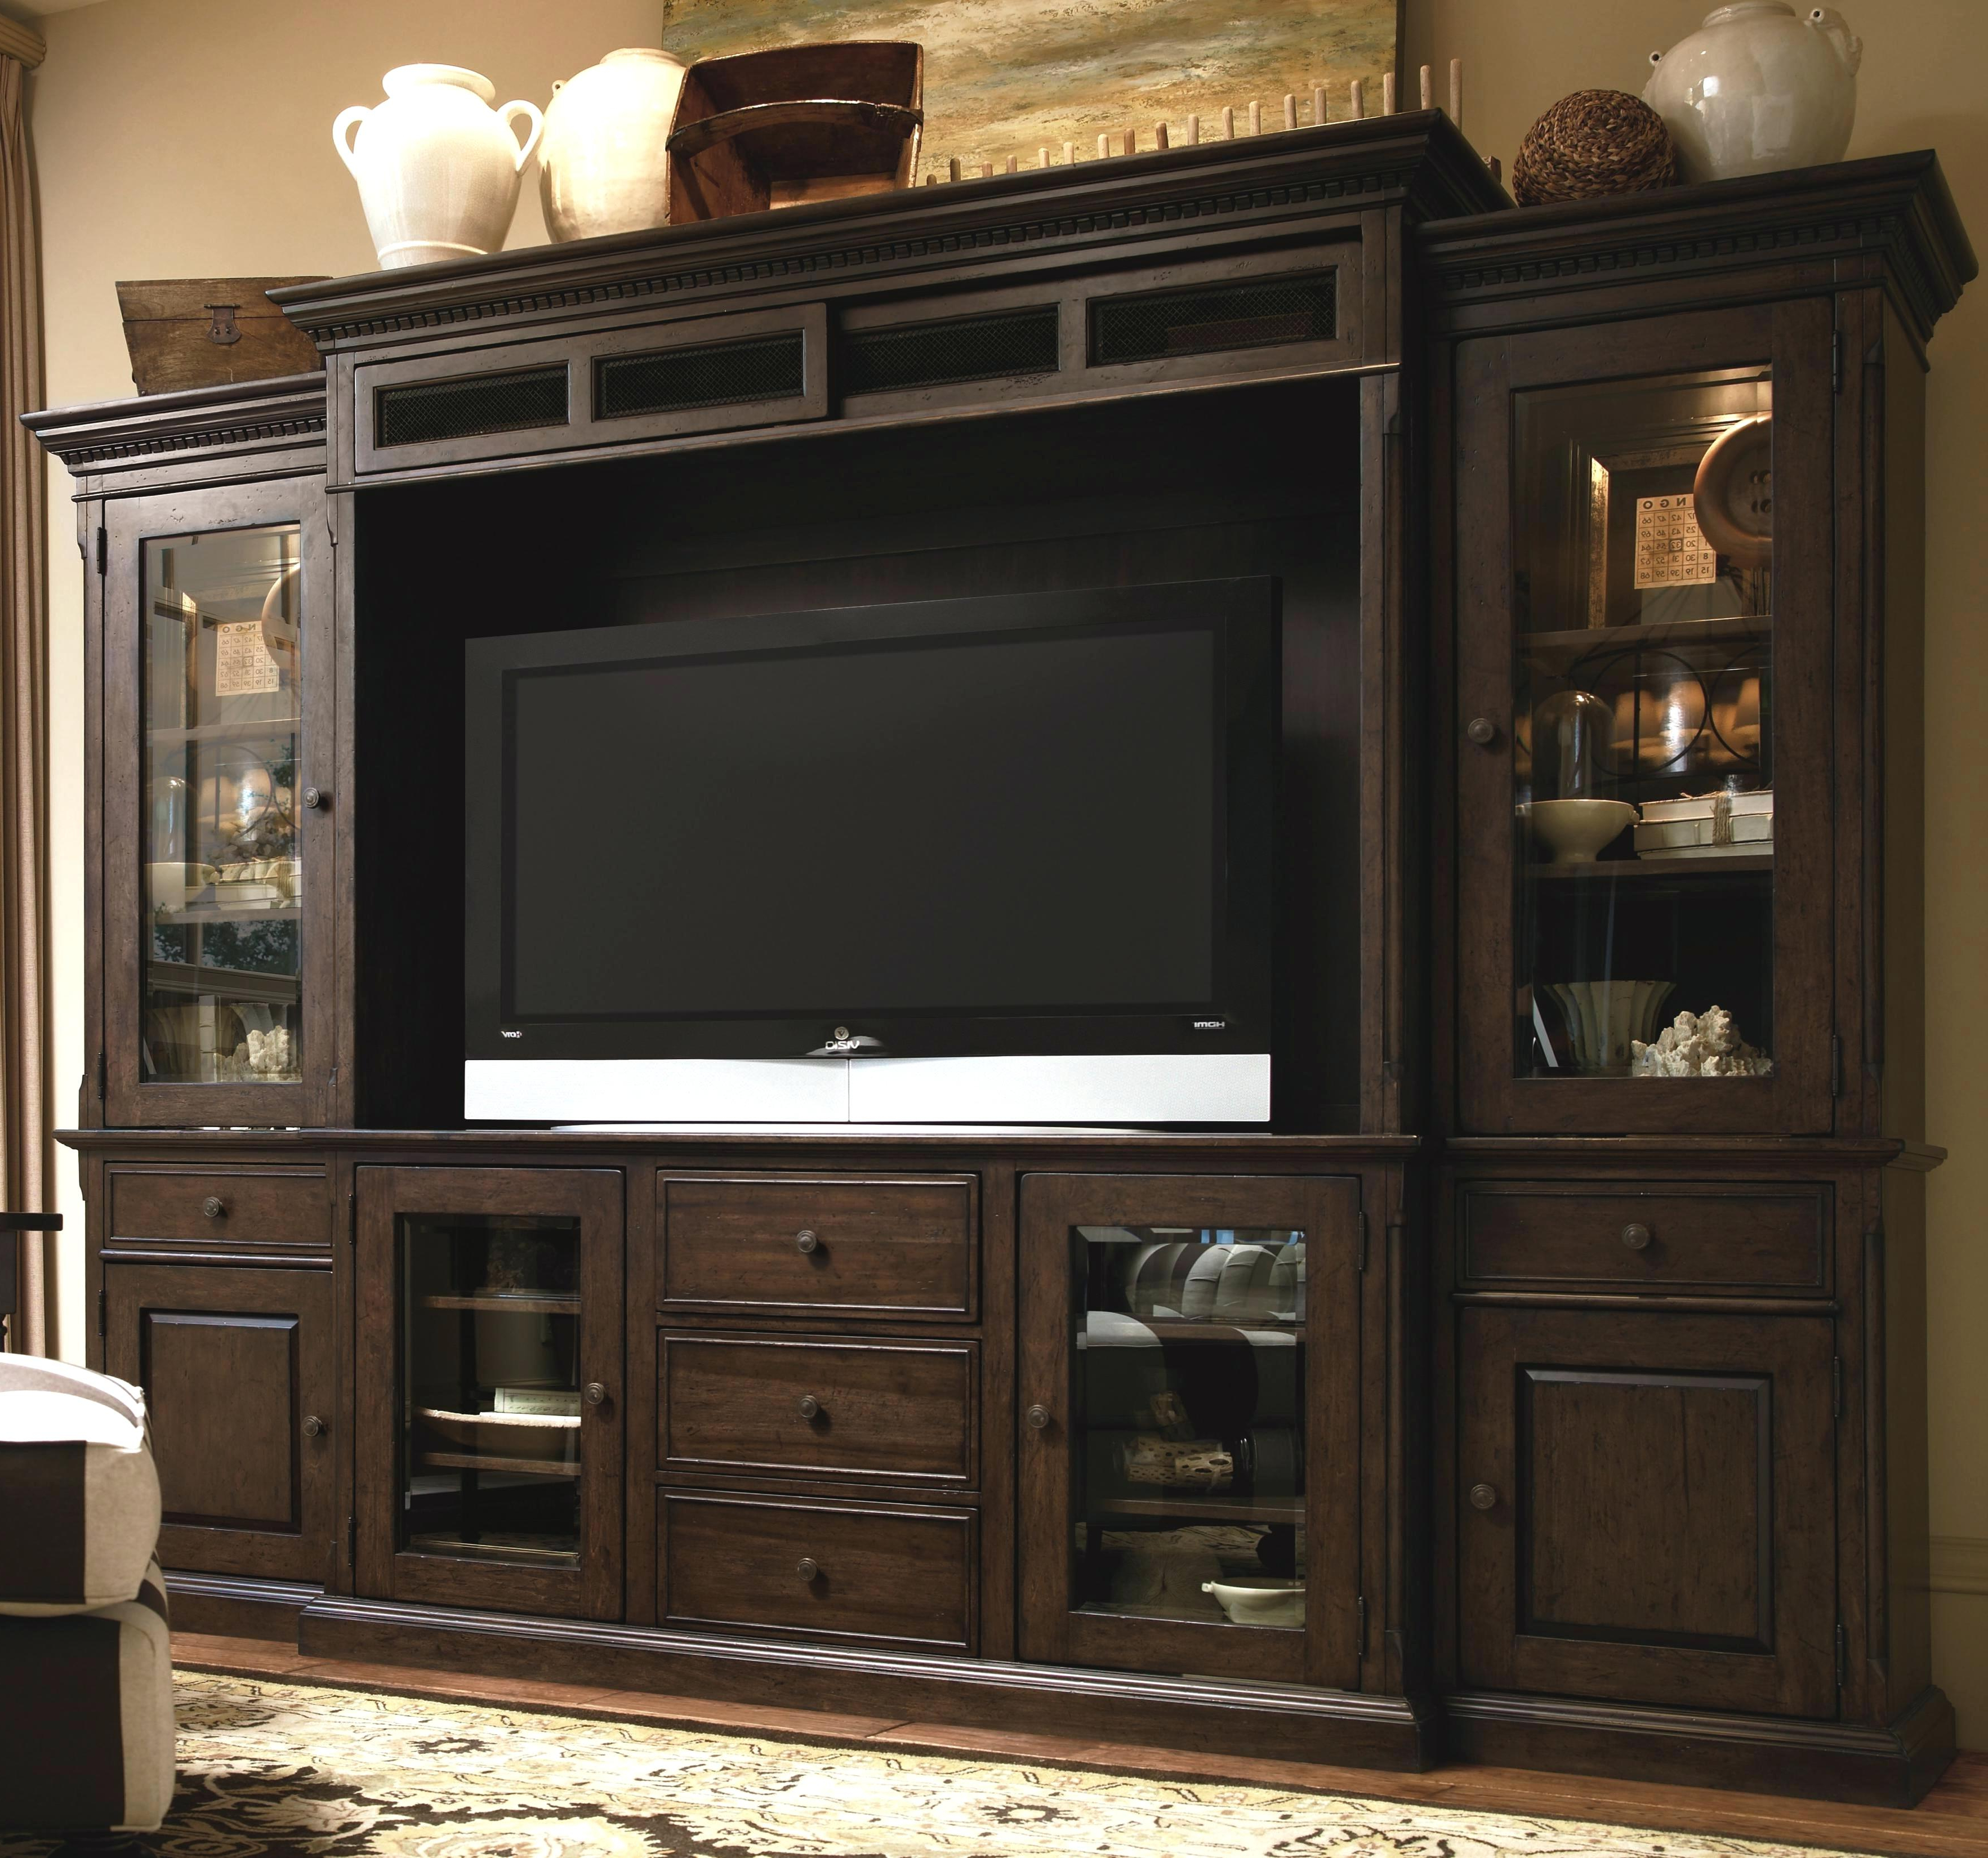 Most Current Wall Units: Extraordinary Wall Unit For 60 Inch Tv Entertainment For 60 Inch Tv Wall Units (View 15 of 20)